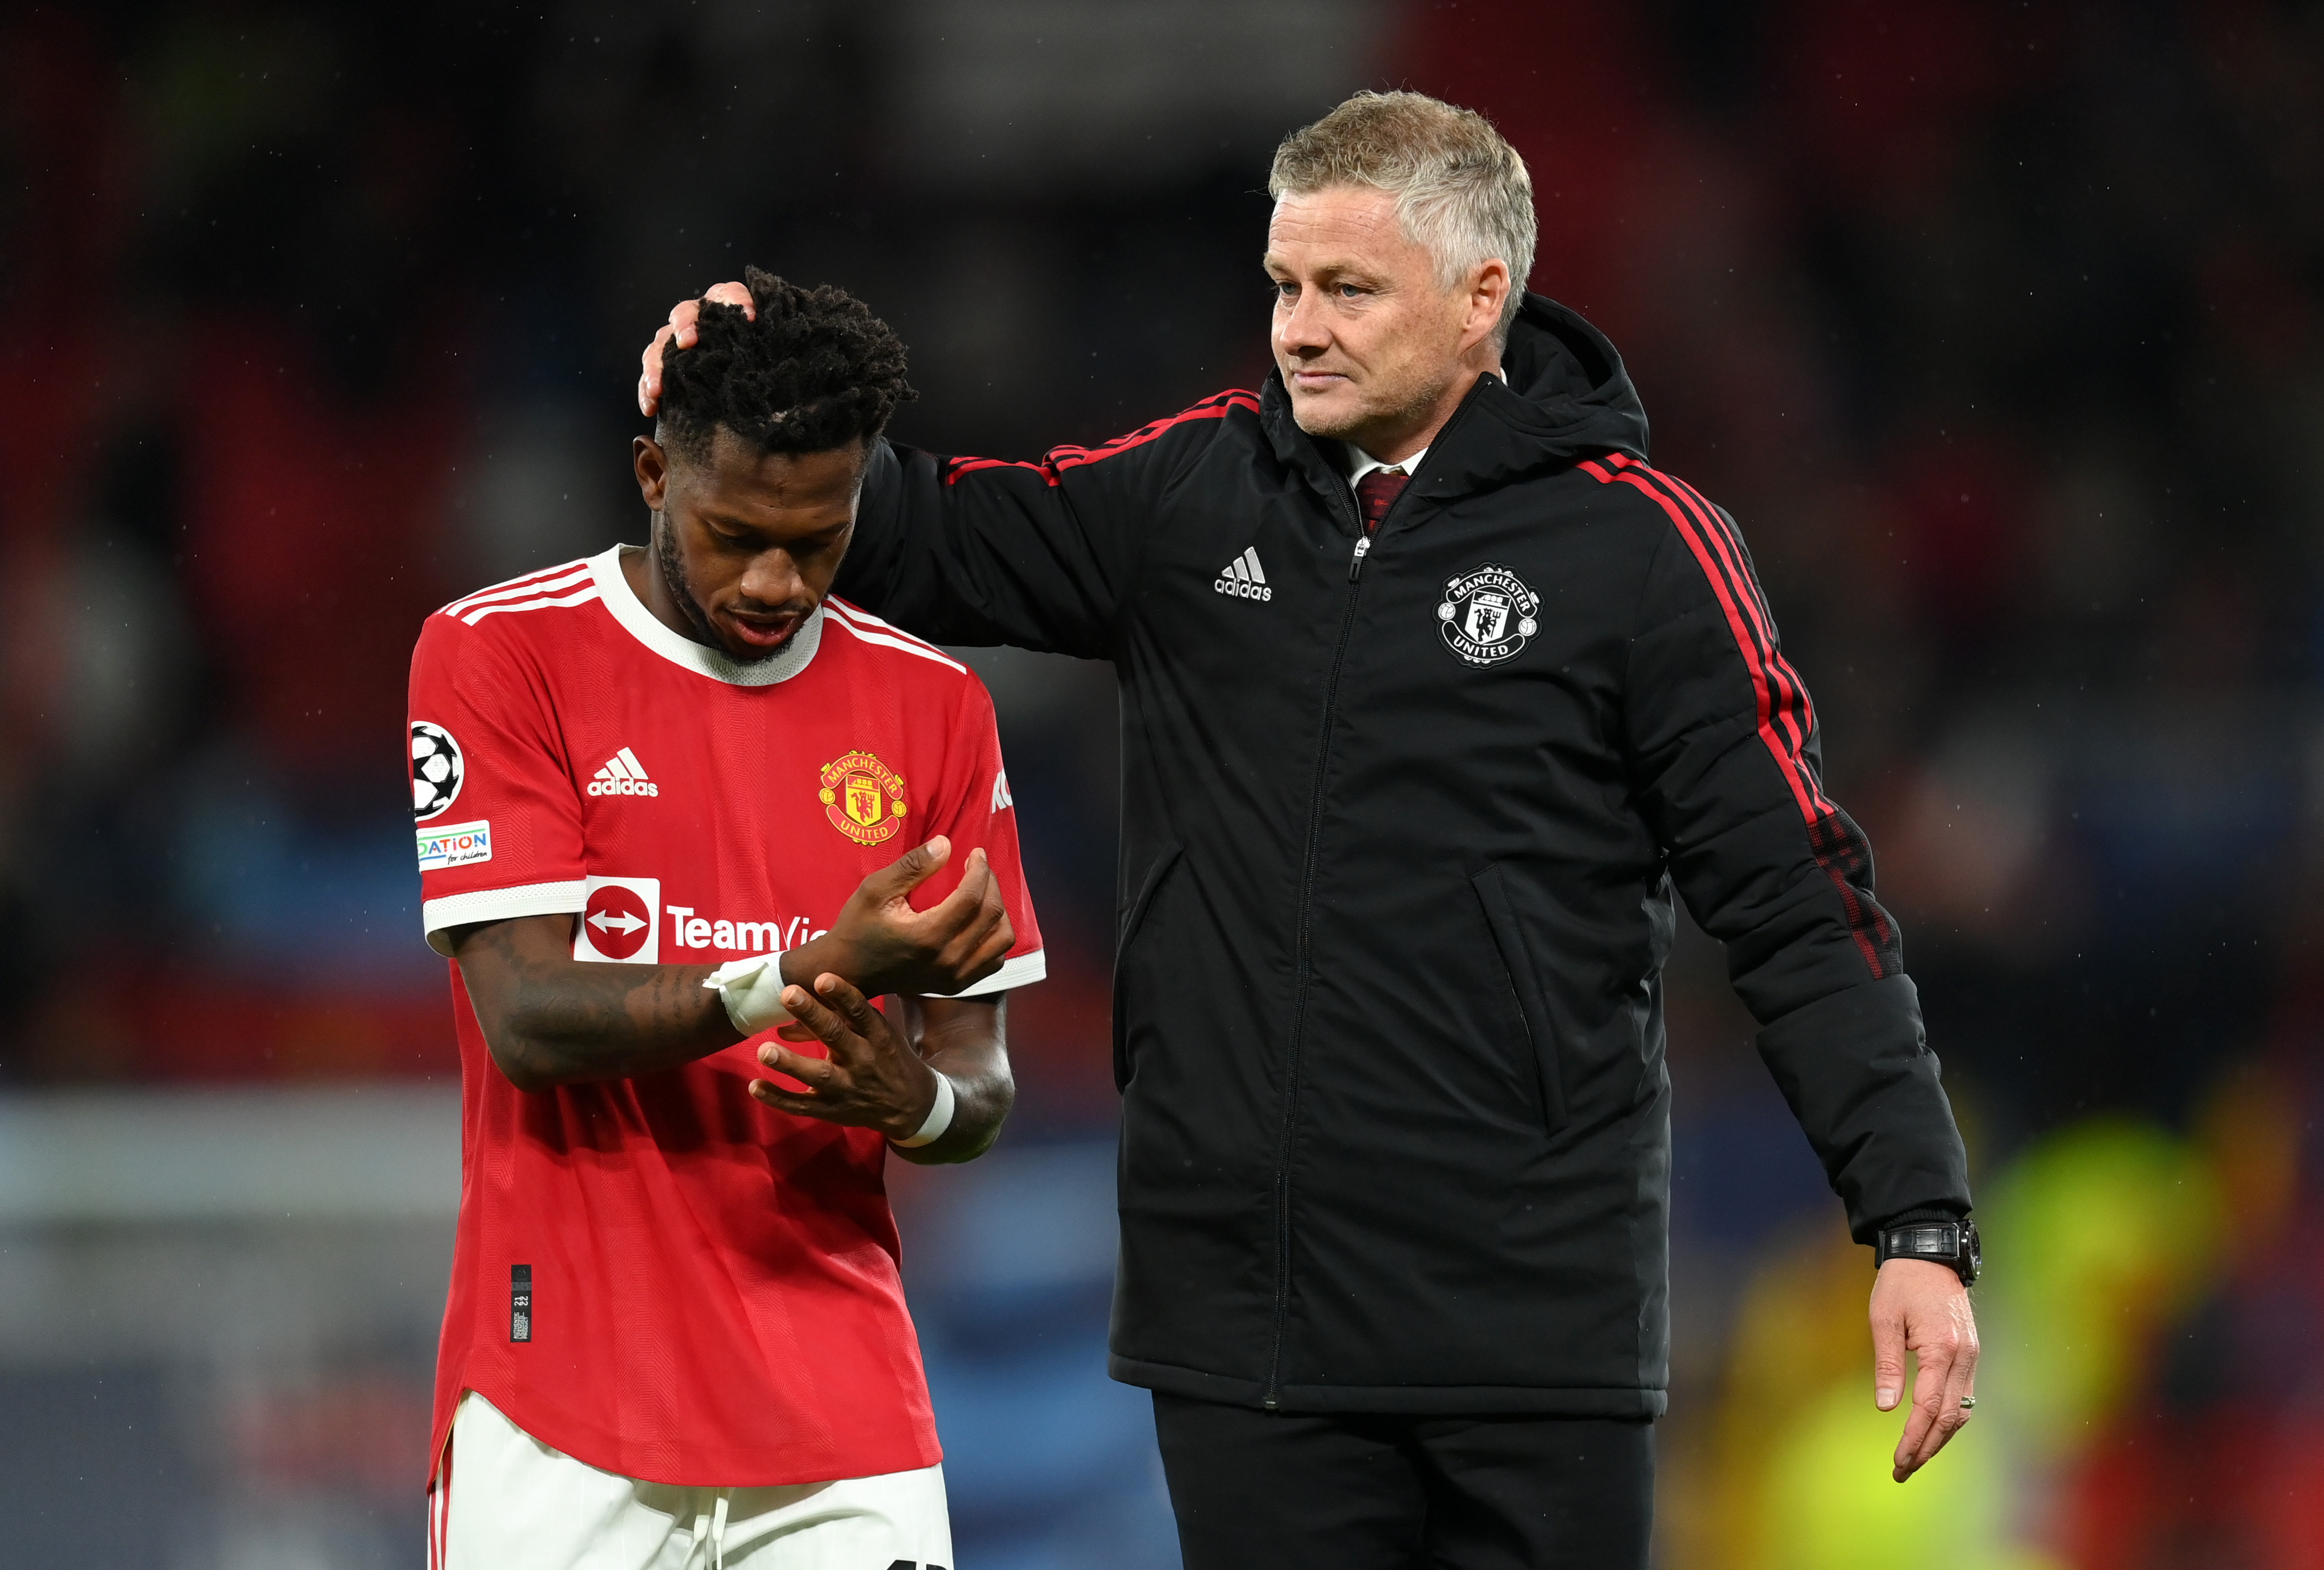 Fred is a regular for Man United but many think he is their weak link